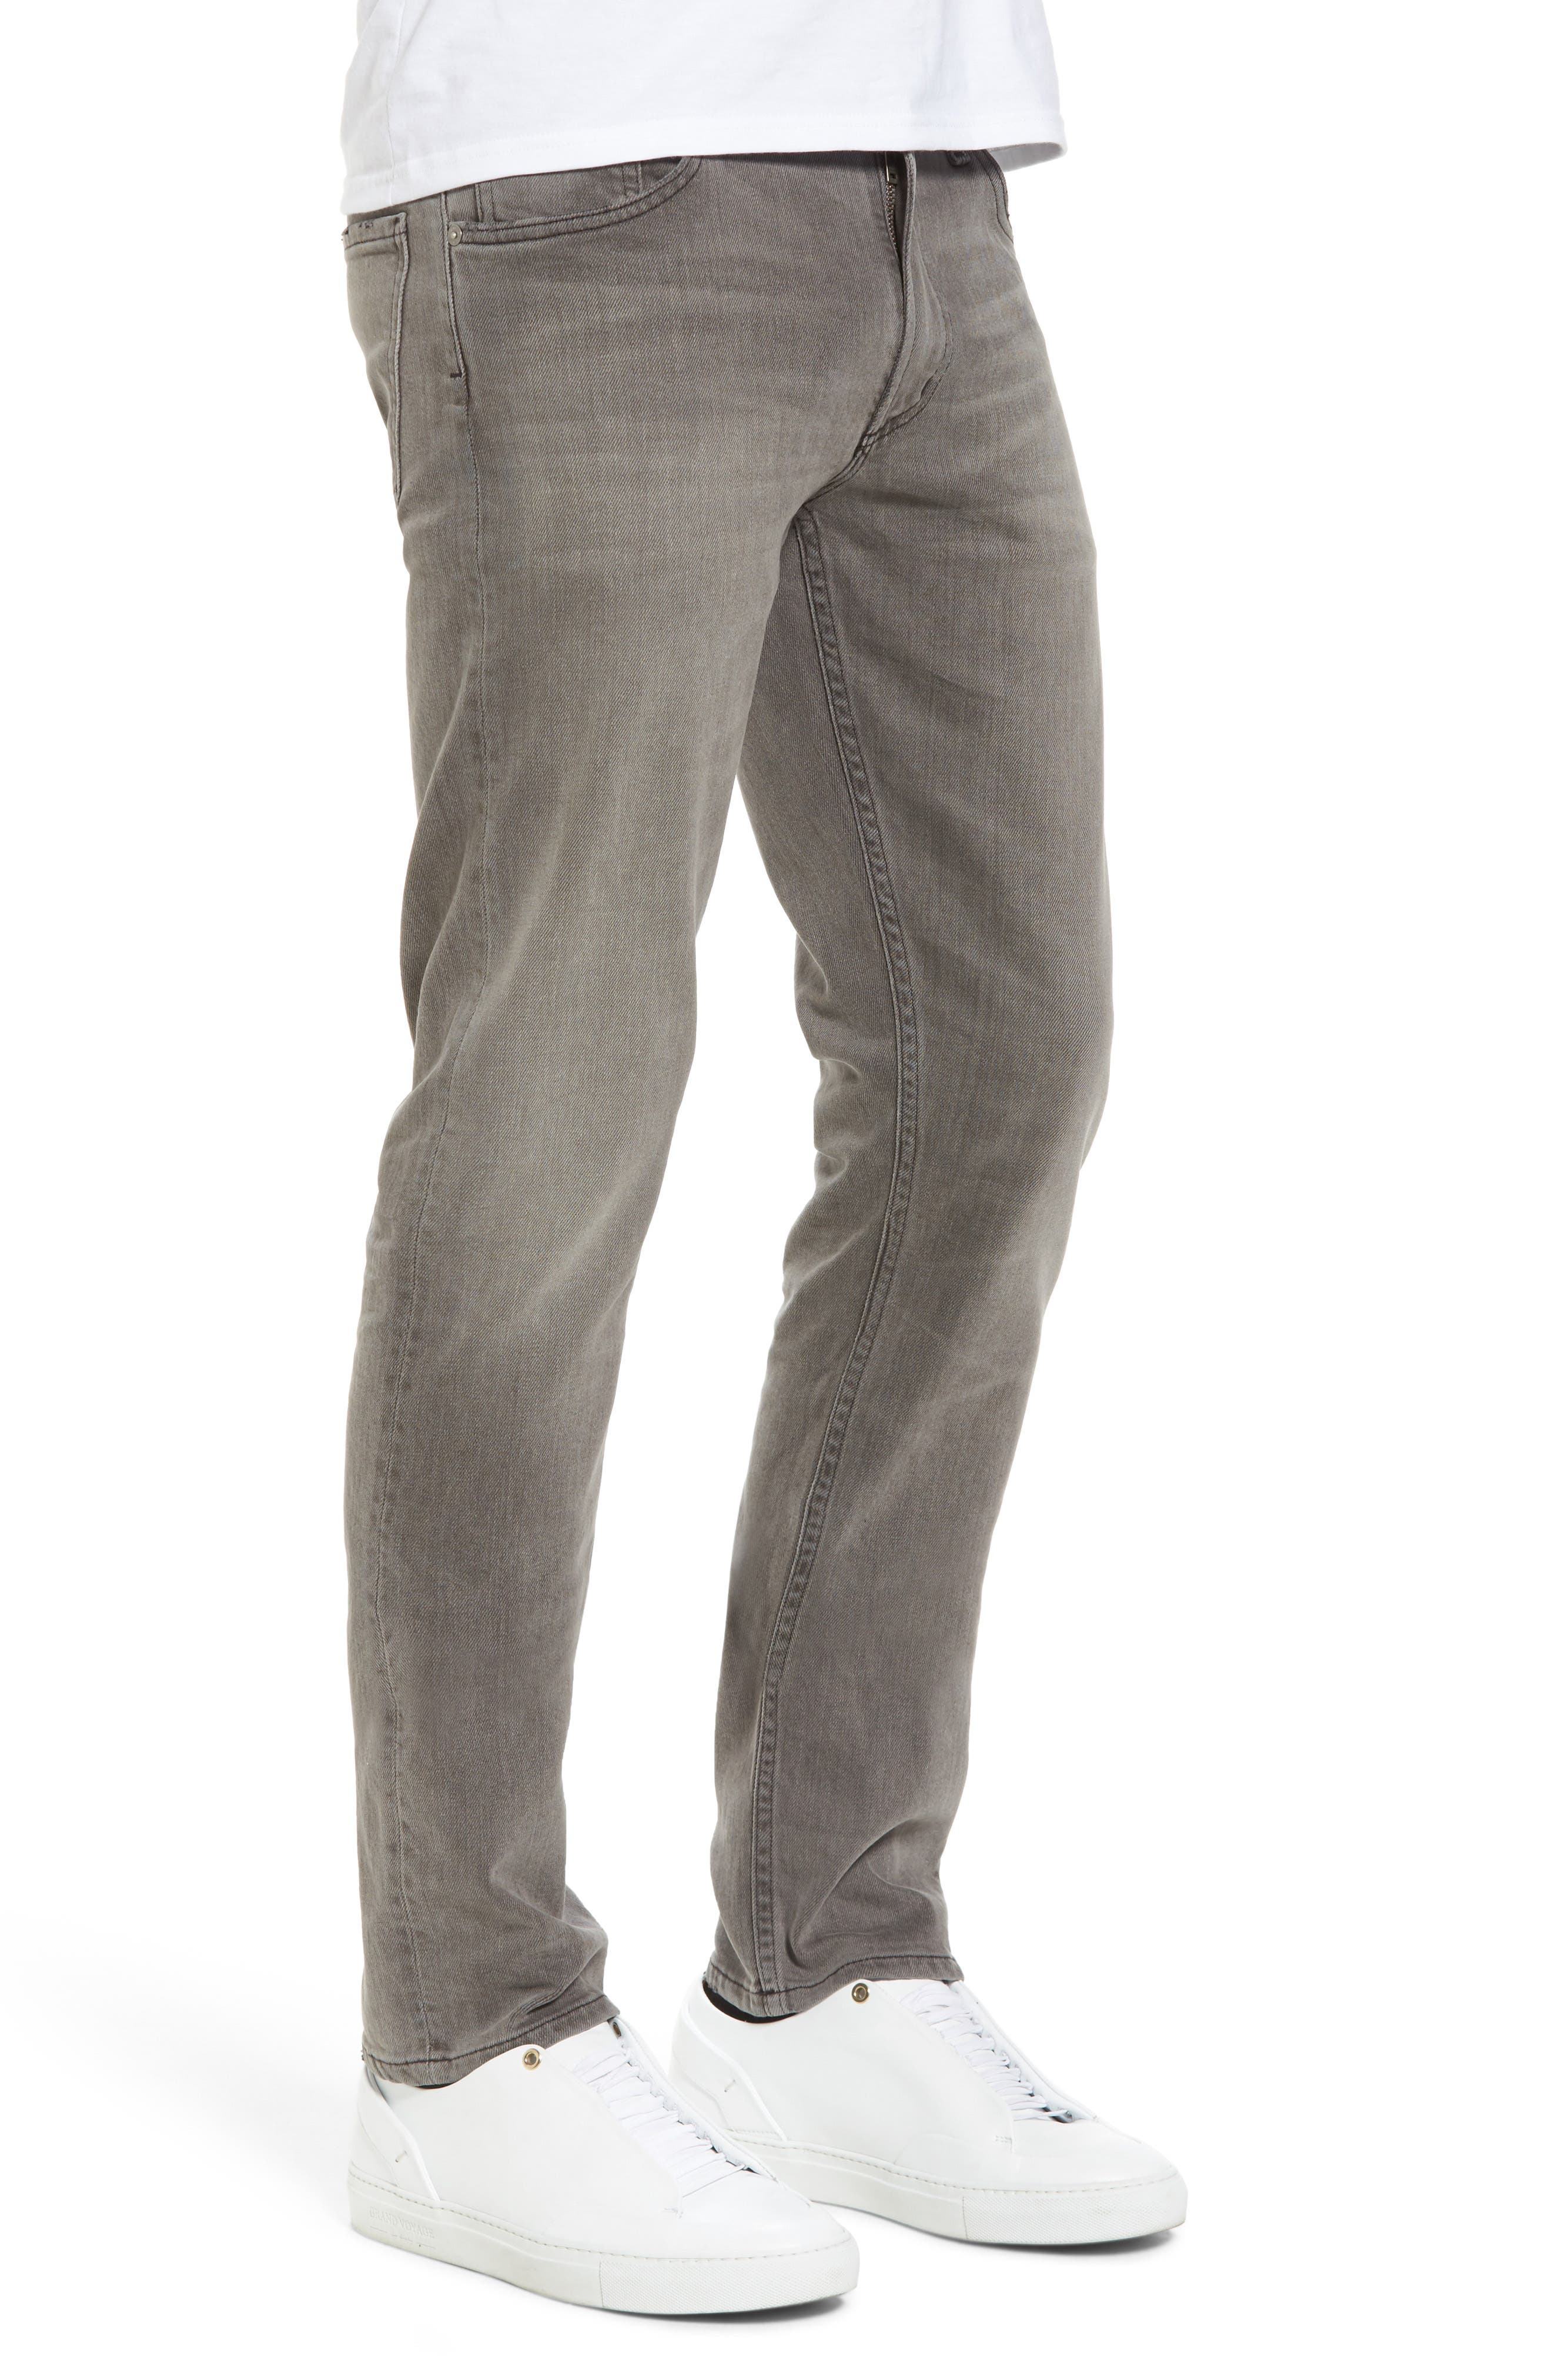 Bowery Slim Fit Jeans,                             Alternate thumbnail 3, color,                             LEON